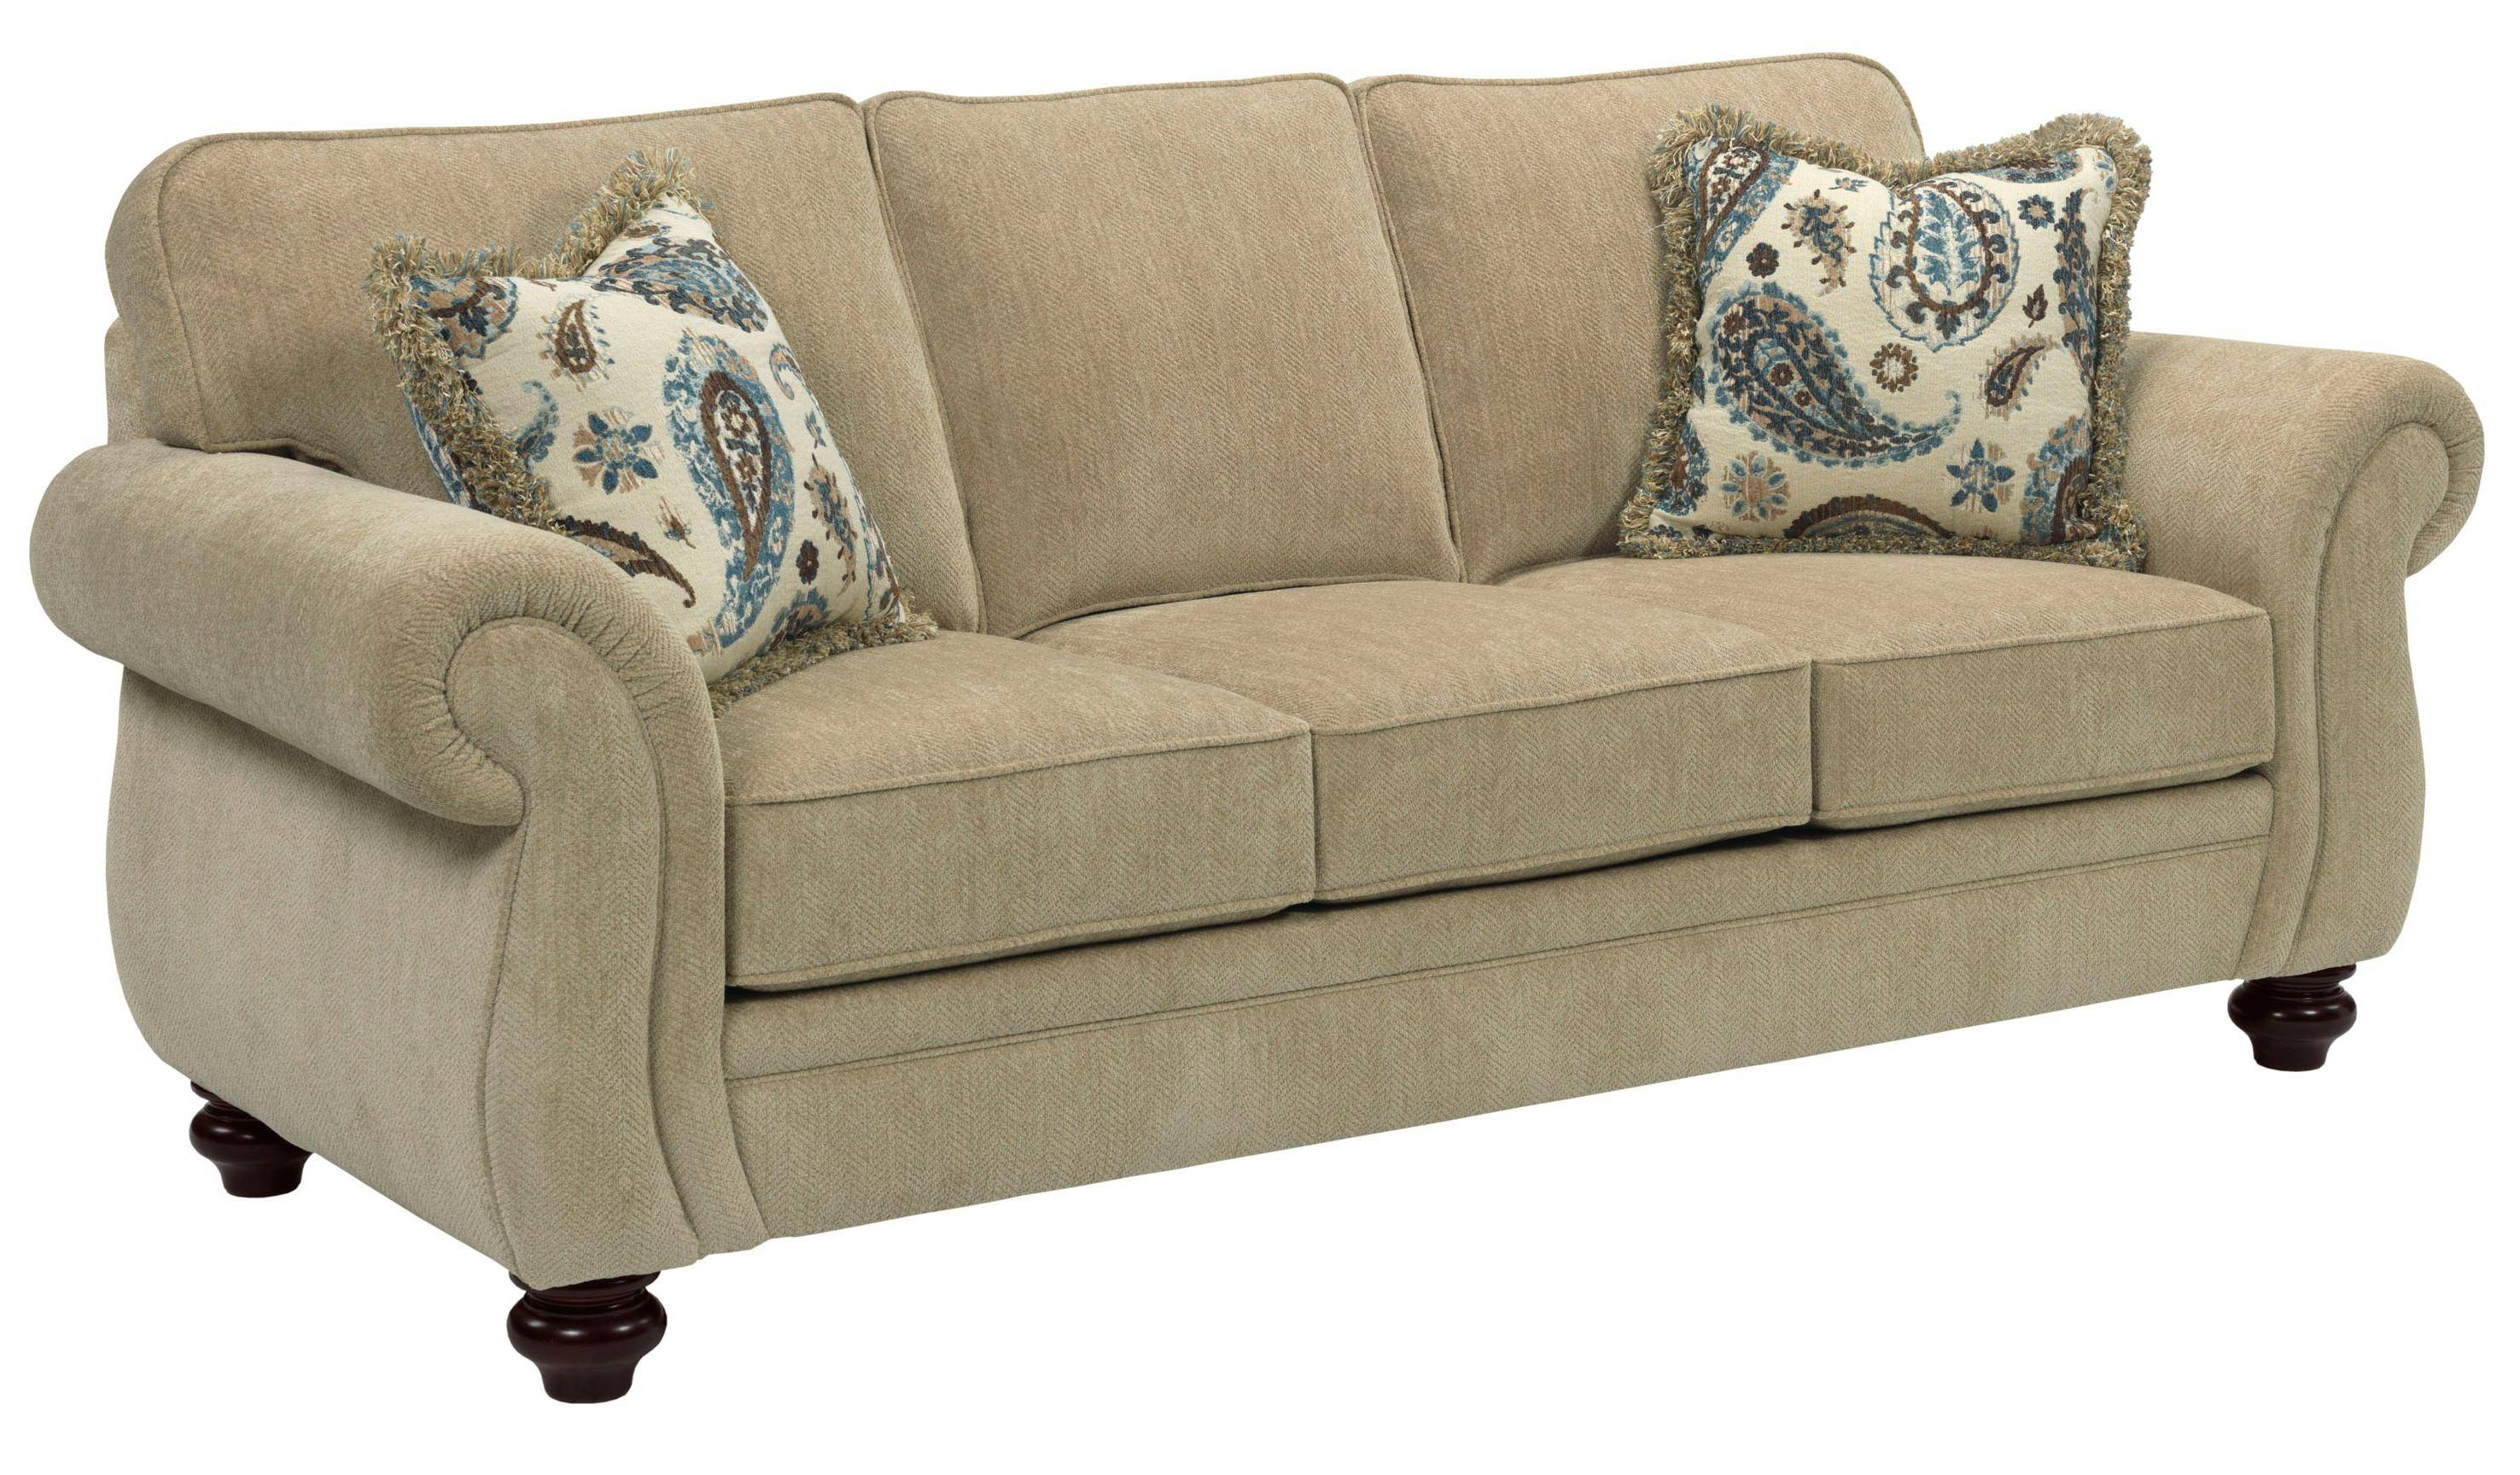 Furniture: Broyhill Sofas | Broyhill Allison Sofa | Broyhill pertaining to Broyhill Larissa Sofas (Image 7 of 15)